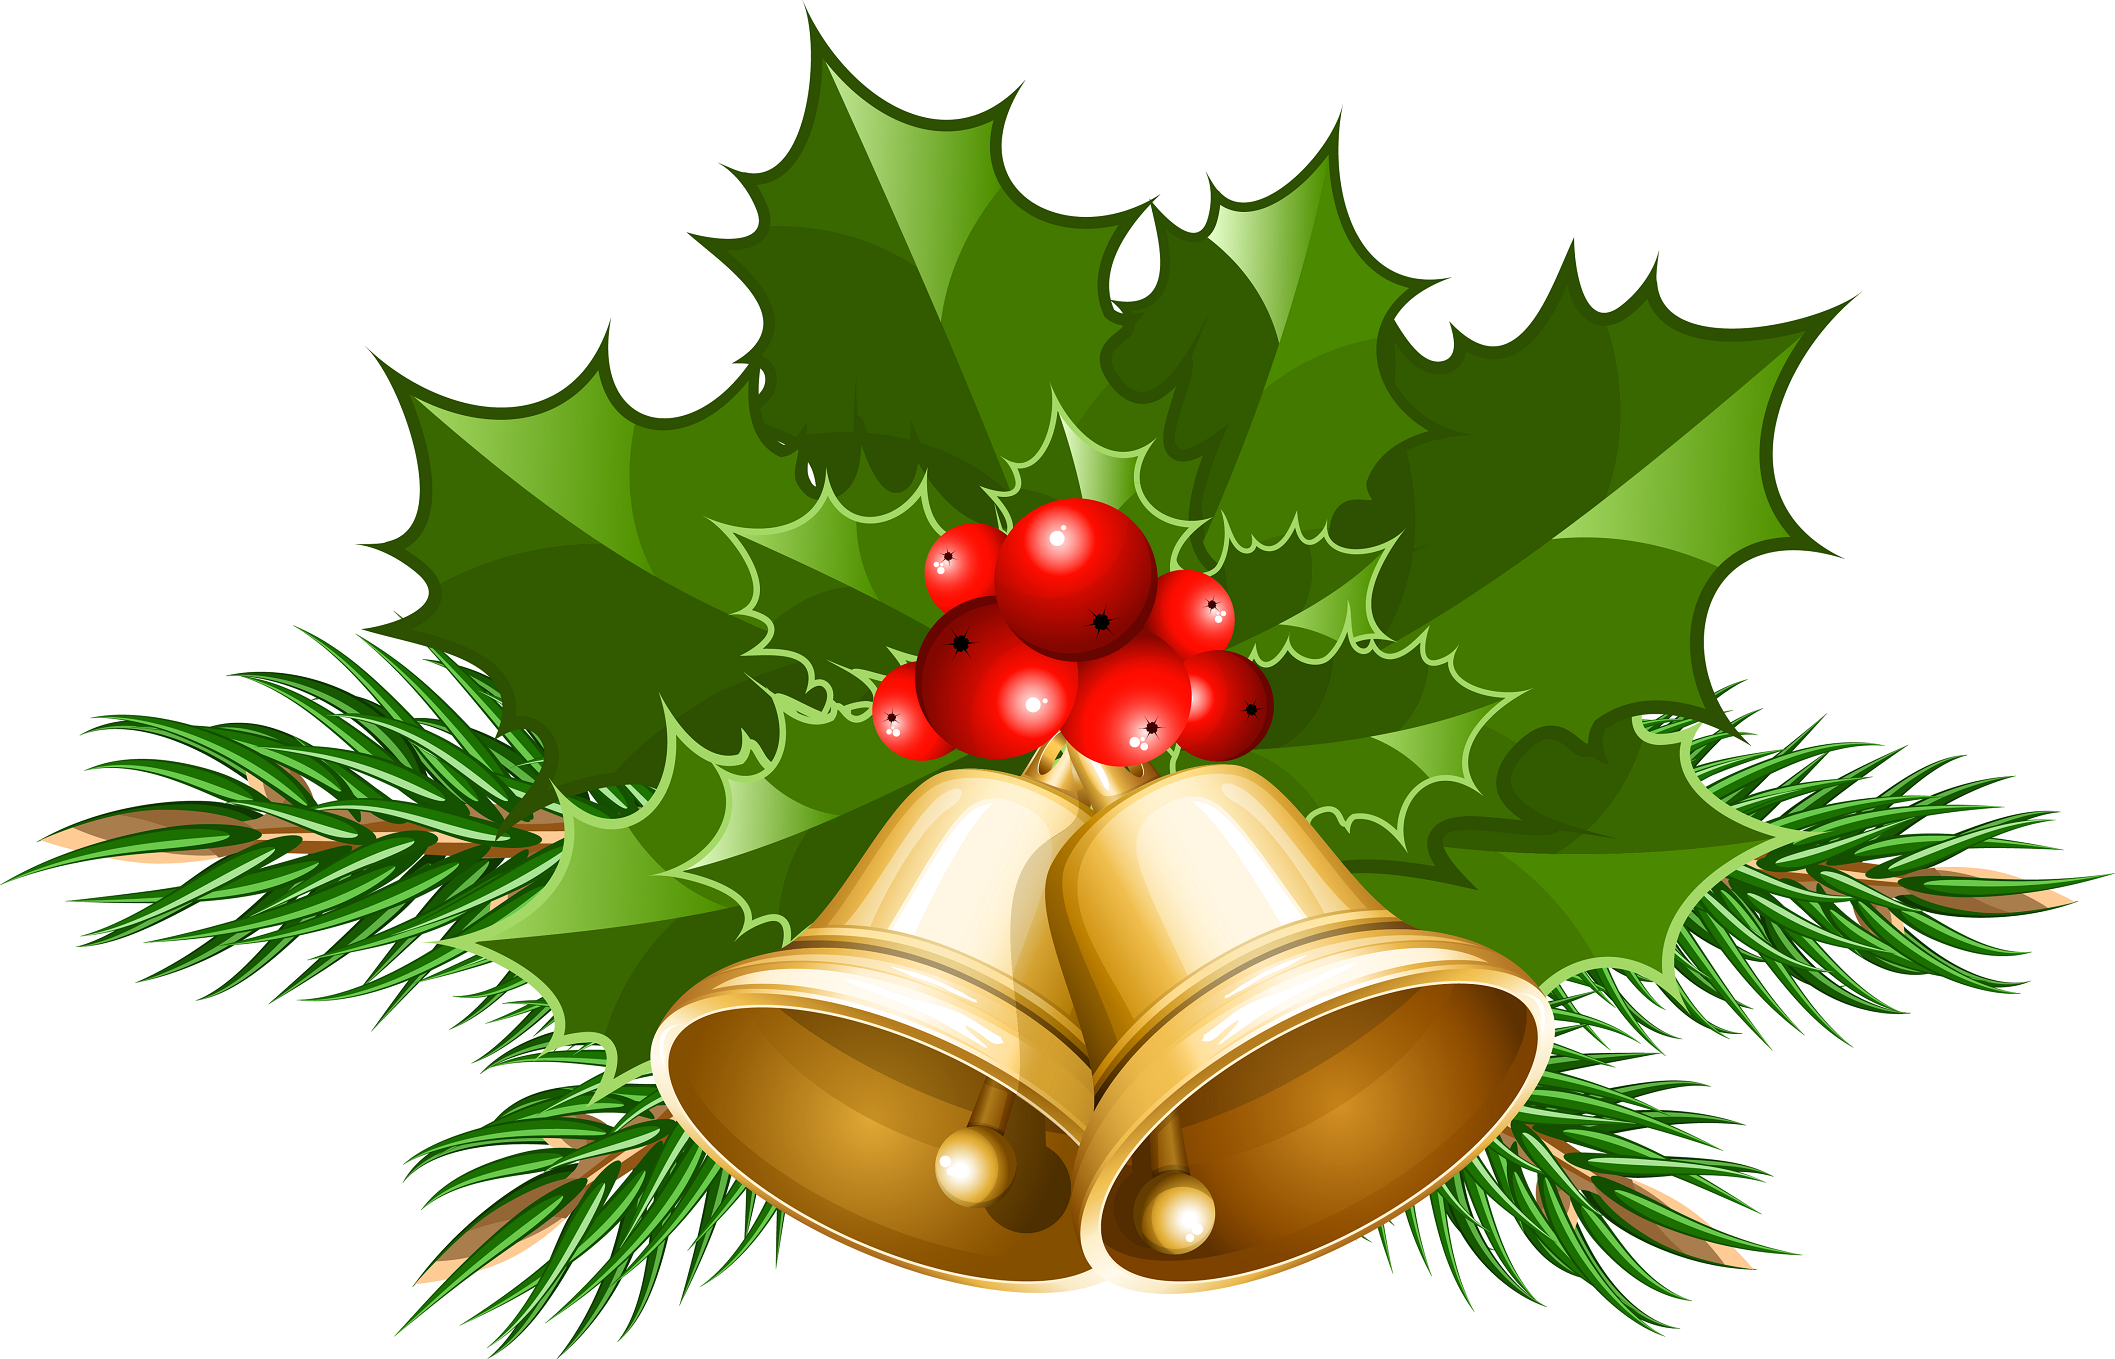 Christmas Graphics Free.Pin On Clip Art Holiday Scrapbook Cards Images Etc Lots